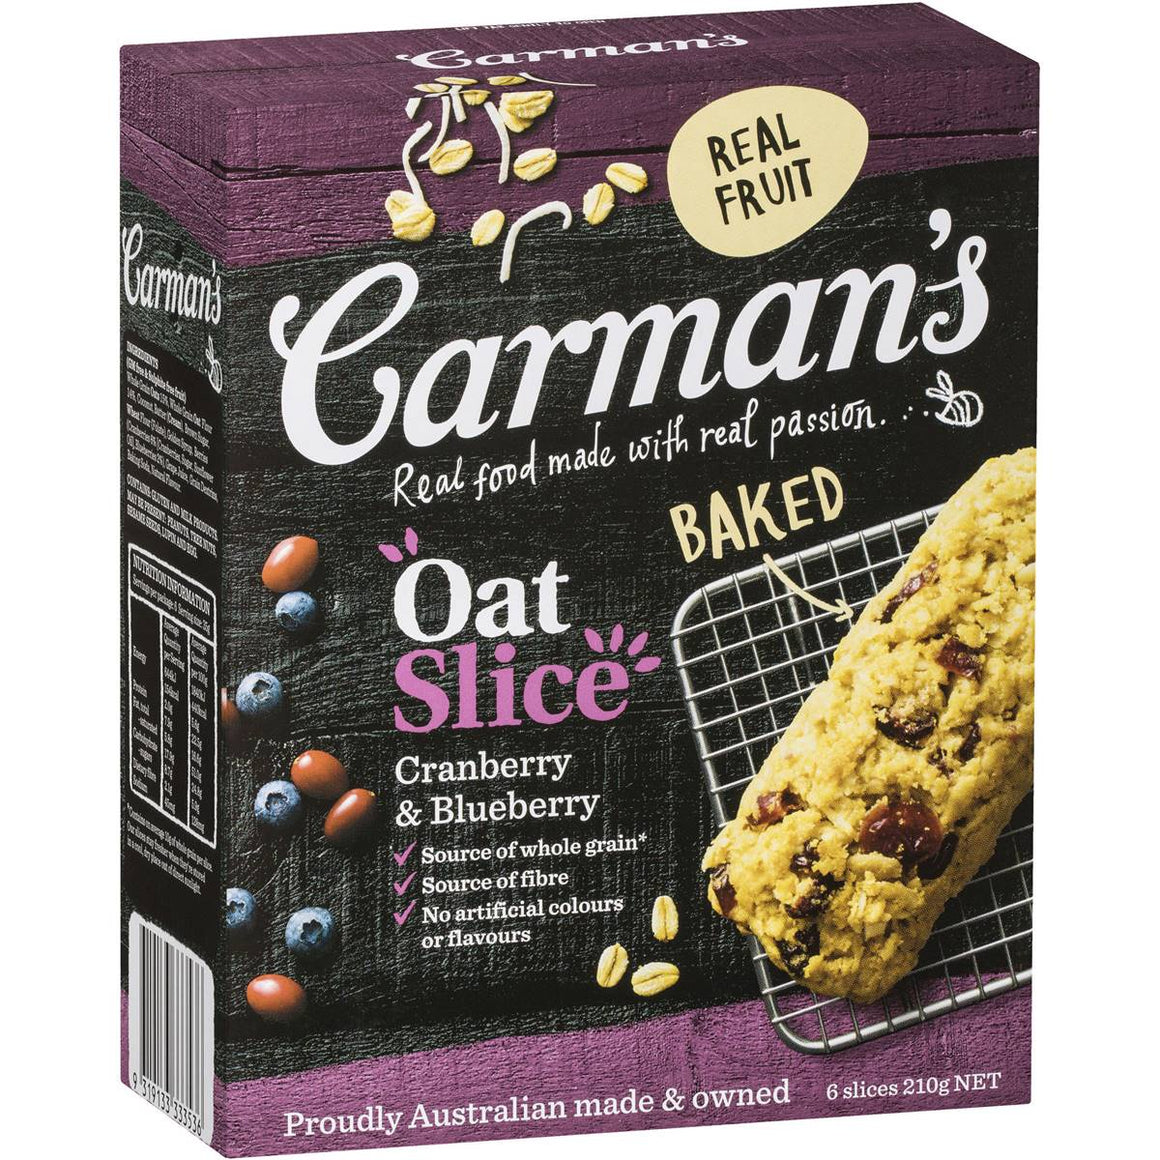 Carmans Cranberry and Blueberry Oat Slice 6 Pack